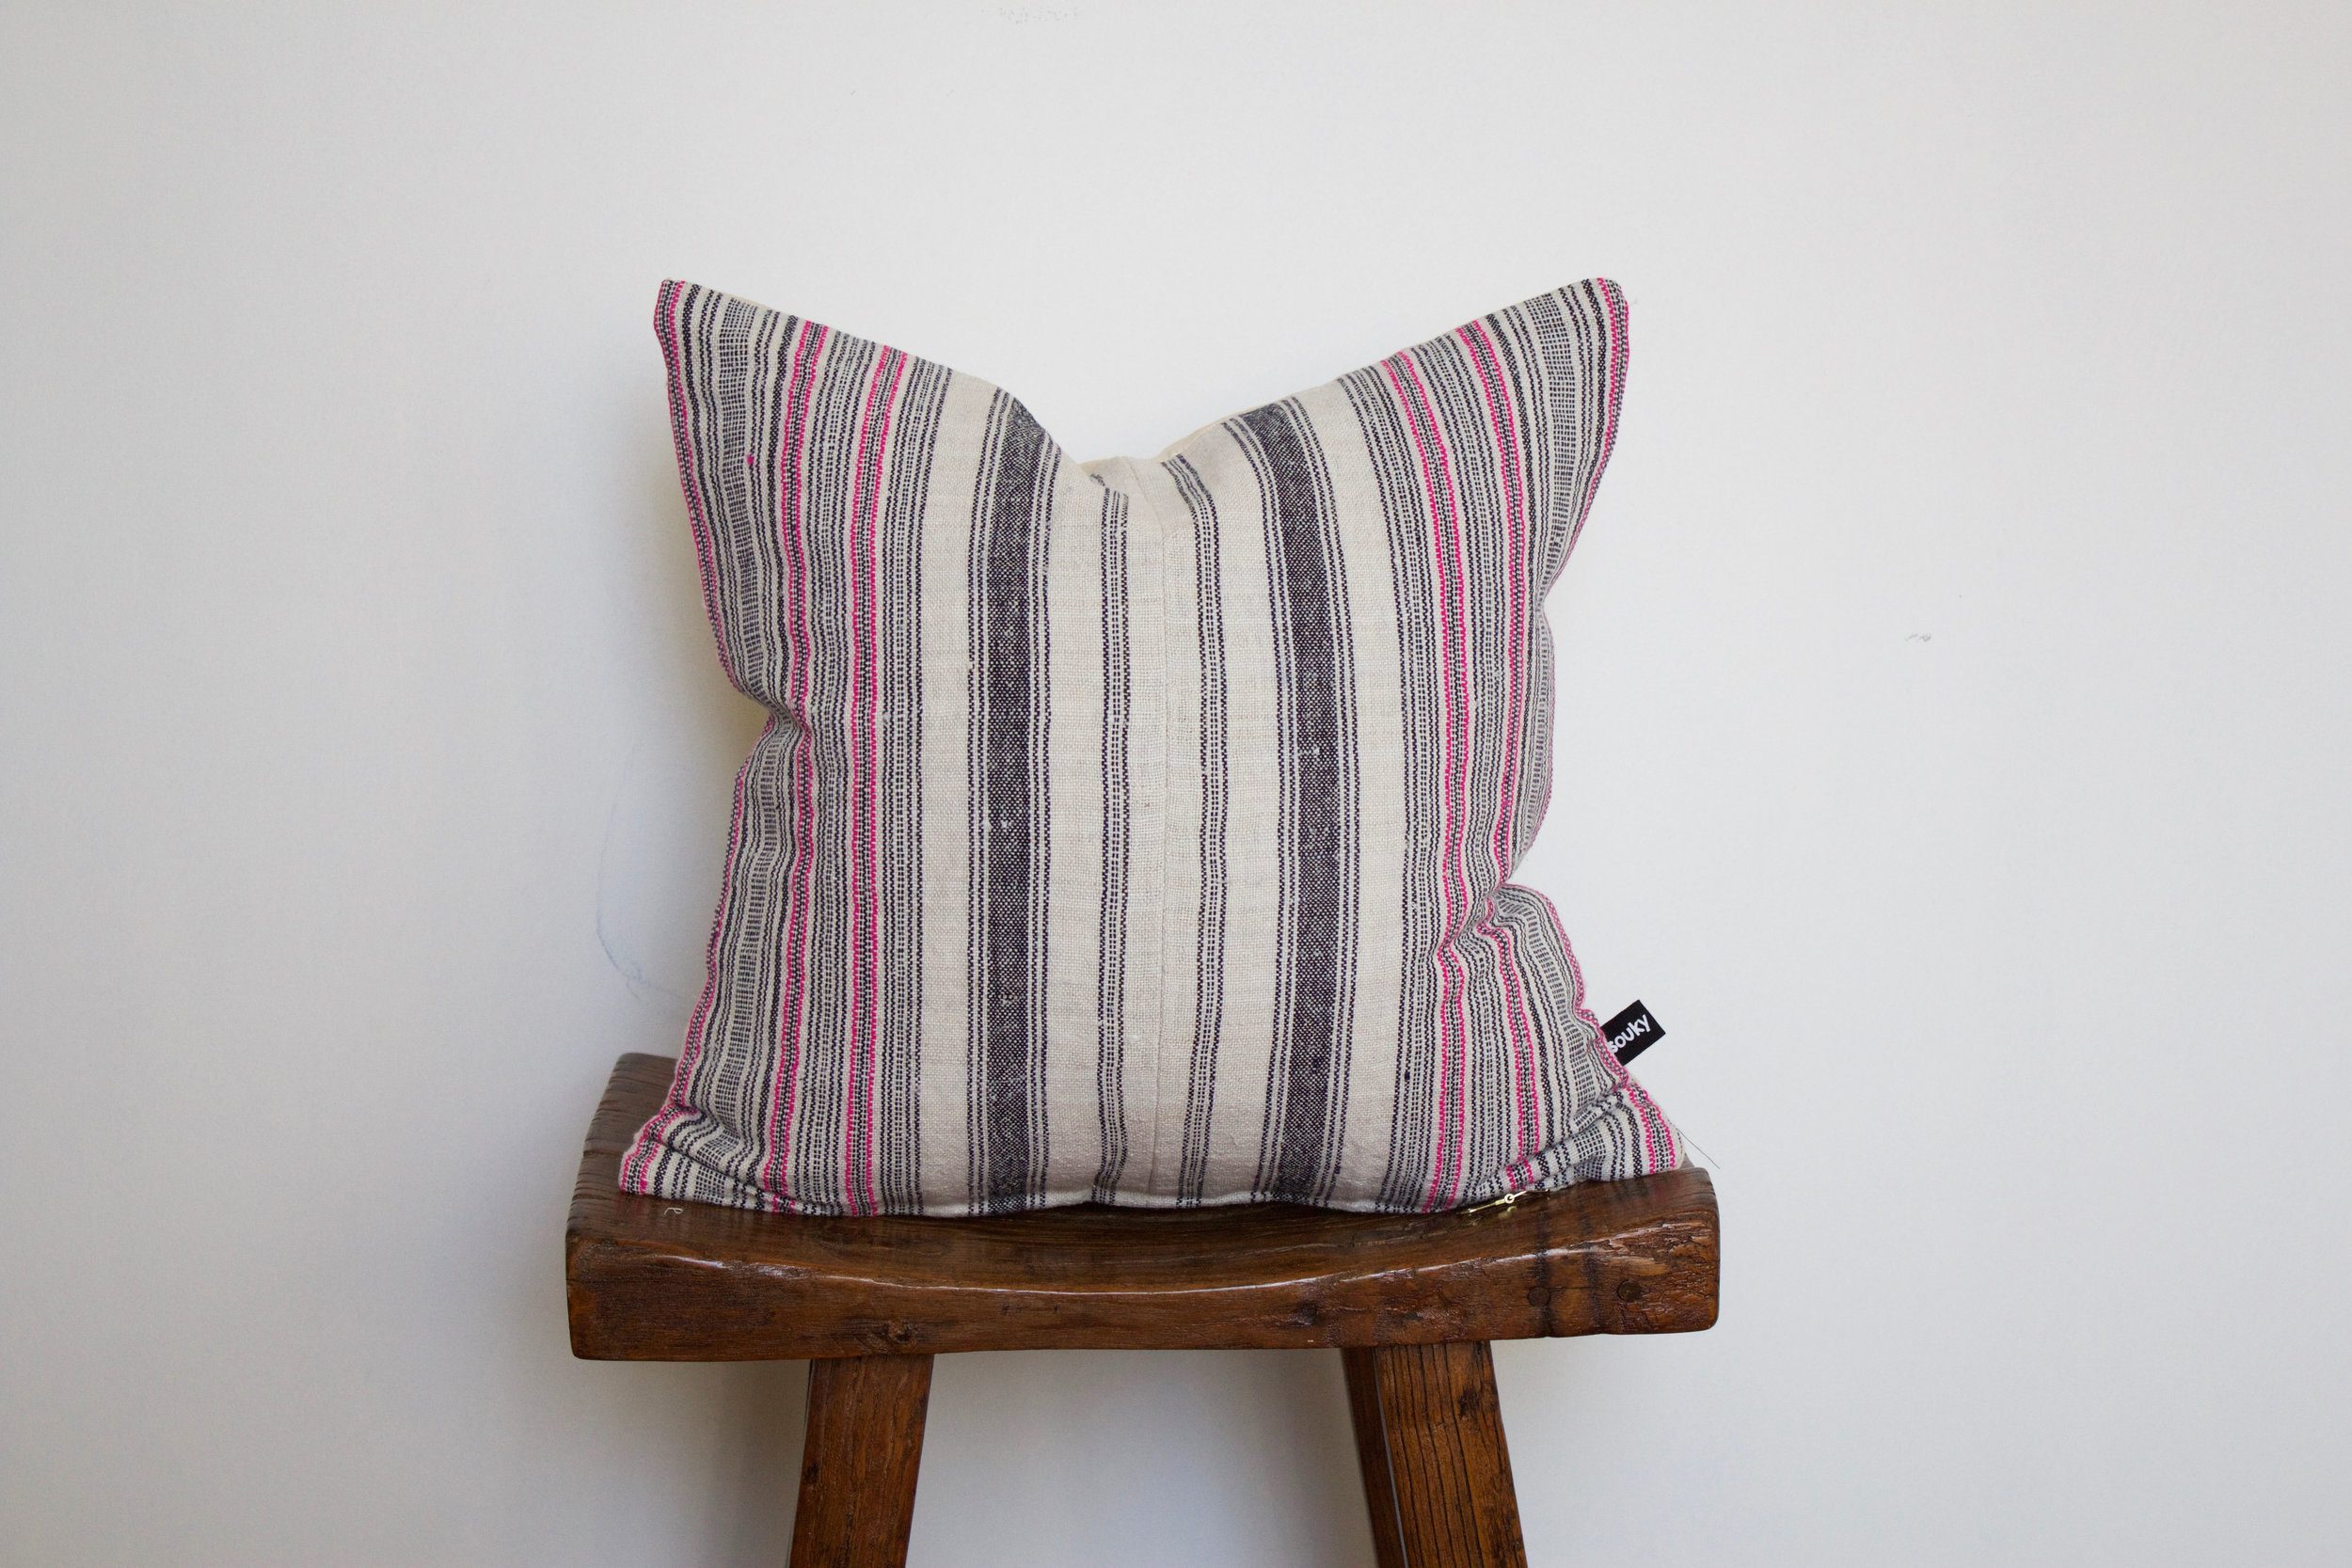 Finley - No. 143   275 RMB  Pillow cover is made from handwoven hemp fabric sourced from Northern Thailand  Size: Roughly 40x40 cm  Pillow back is made from a neutral cotton/linen blend  Zipper on bottom of pillow  Down insert included  Hand wash in cold water